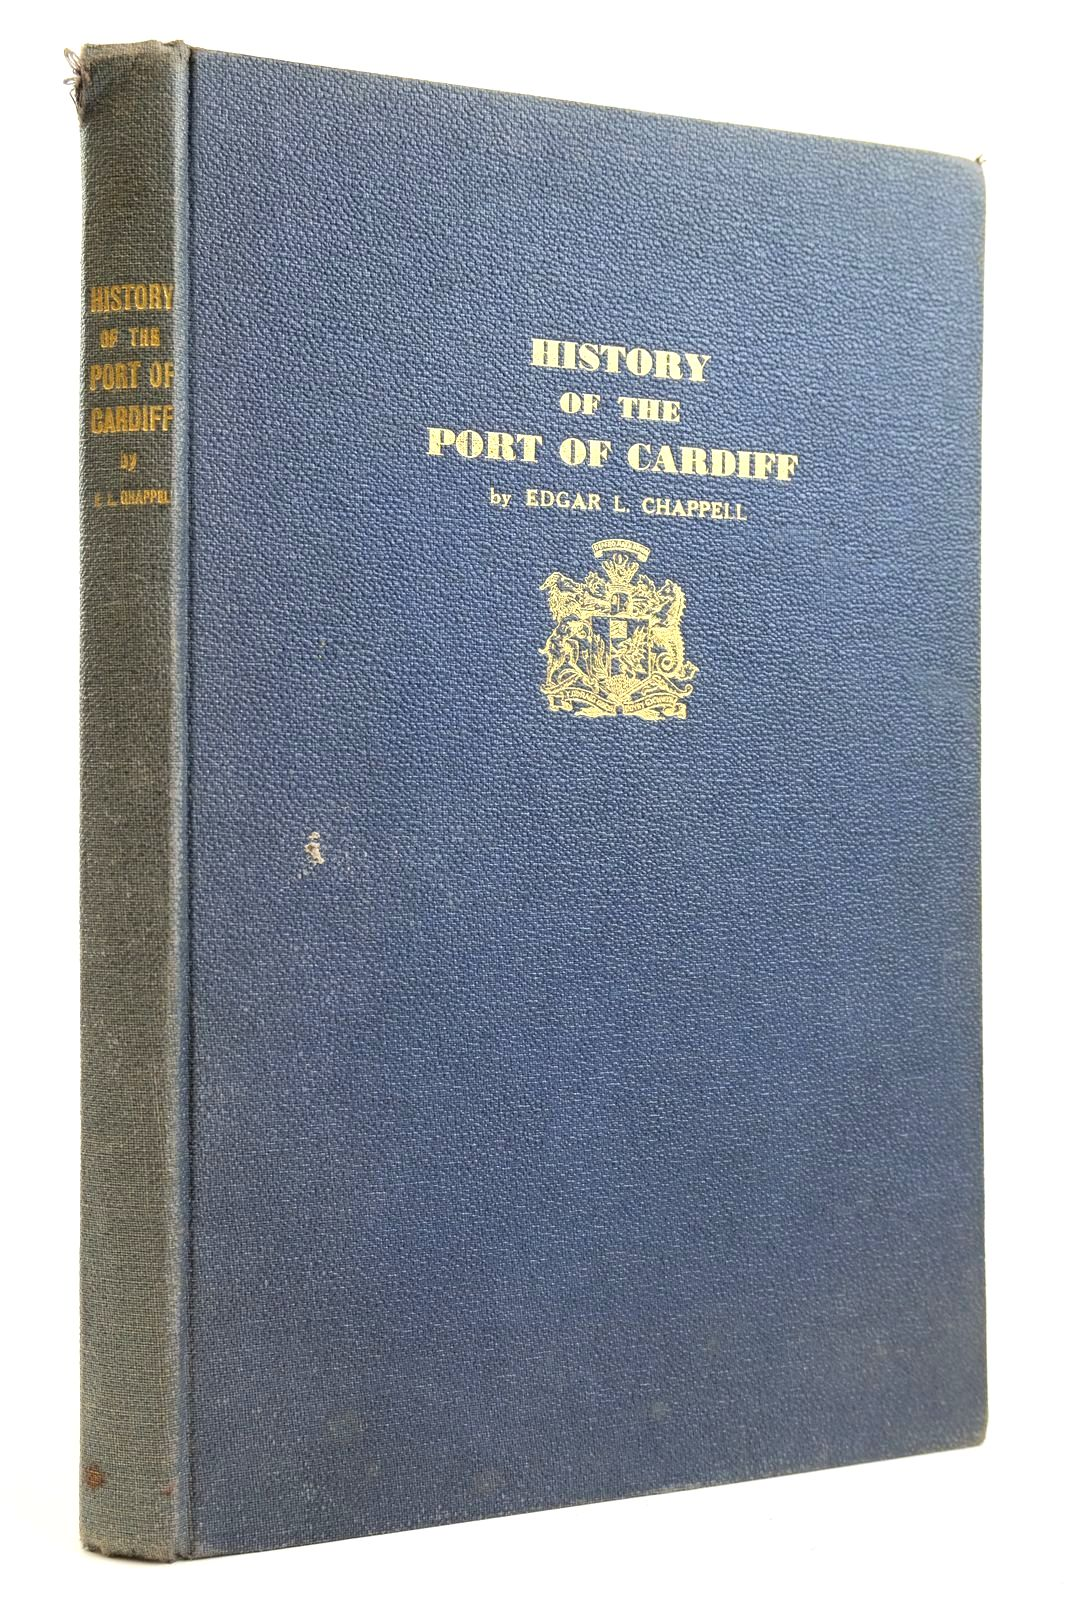 Photo of HISTORY OF THE PORT OF CARDIFF written by Chappell, Edgar L. published by Priory Press Limited (STOCK CODE: 2132490)  for sale by Stella & Rose's Books